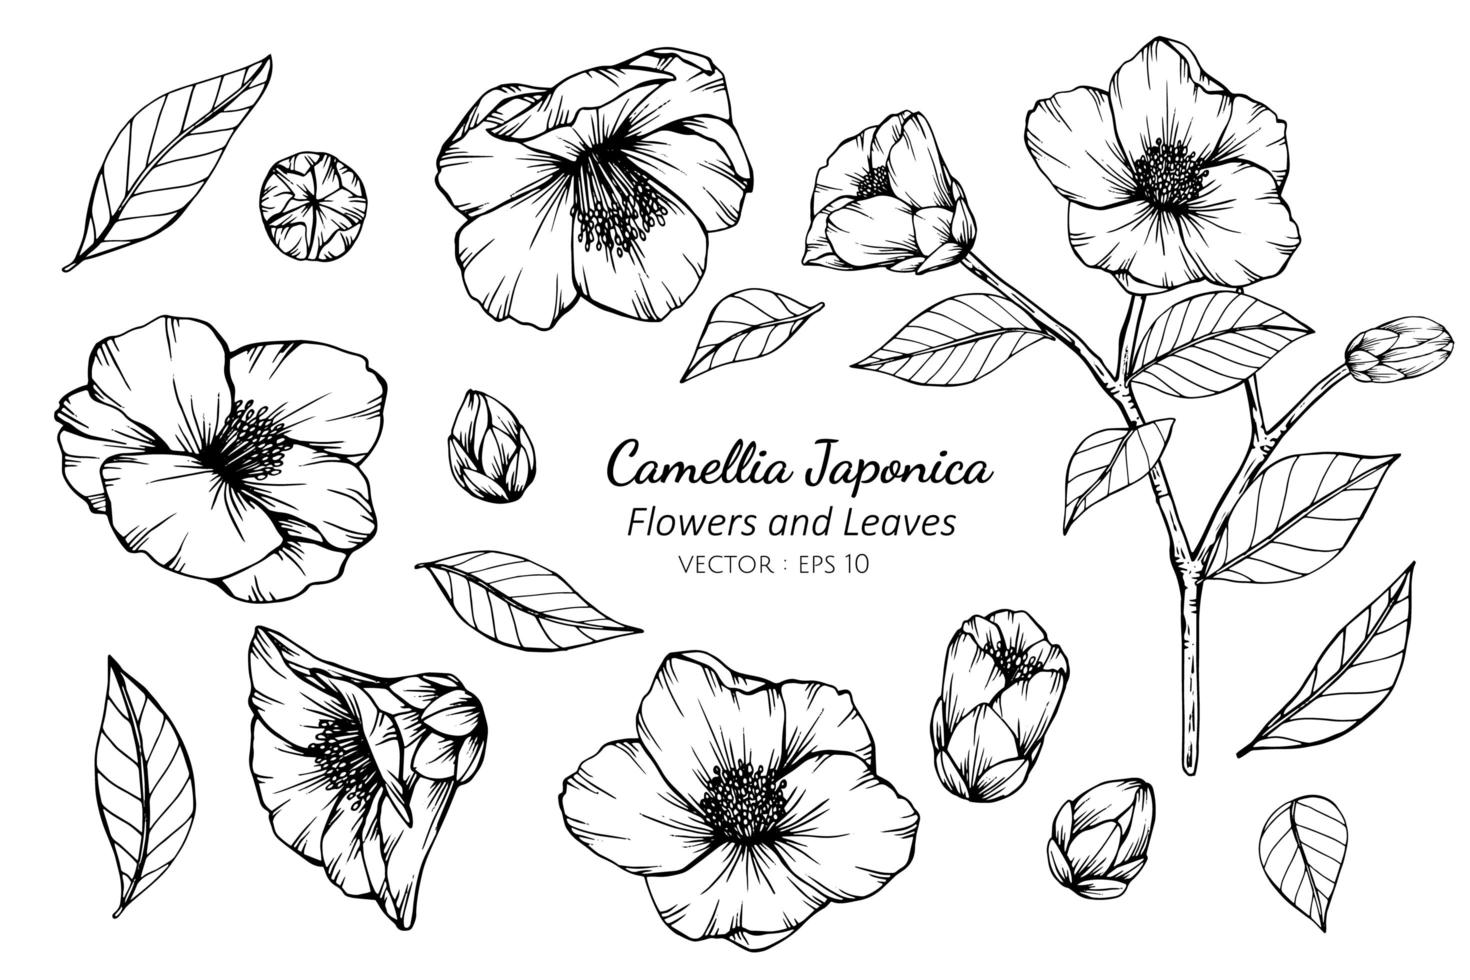 Collection of Camellia Japonica Flowers and Leaves vector